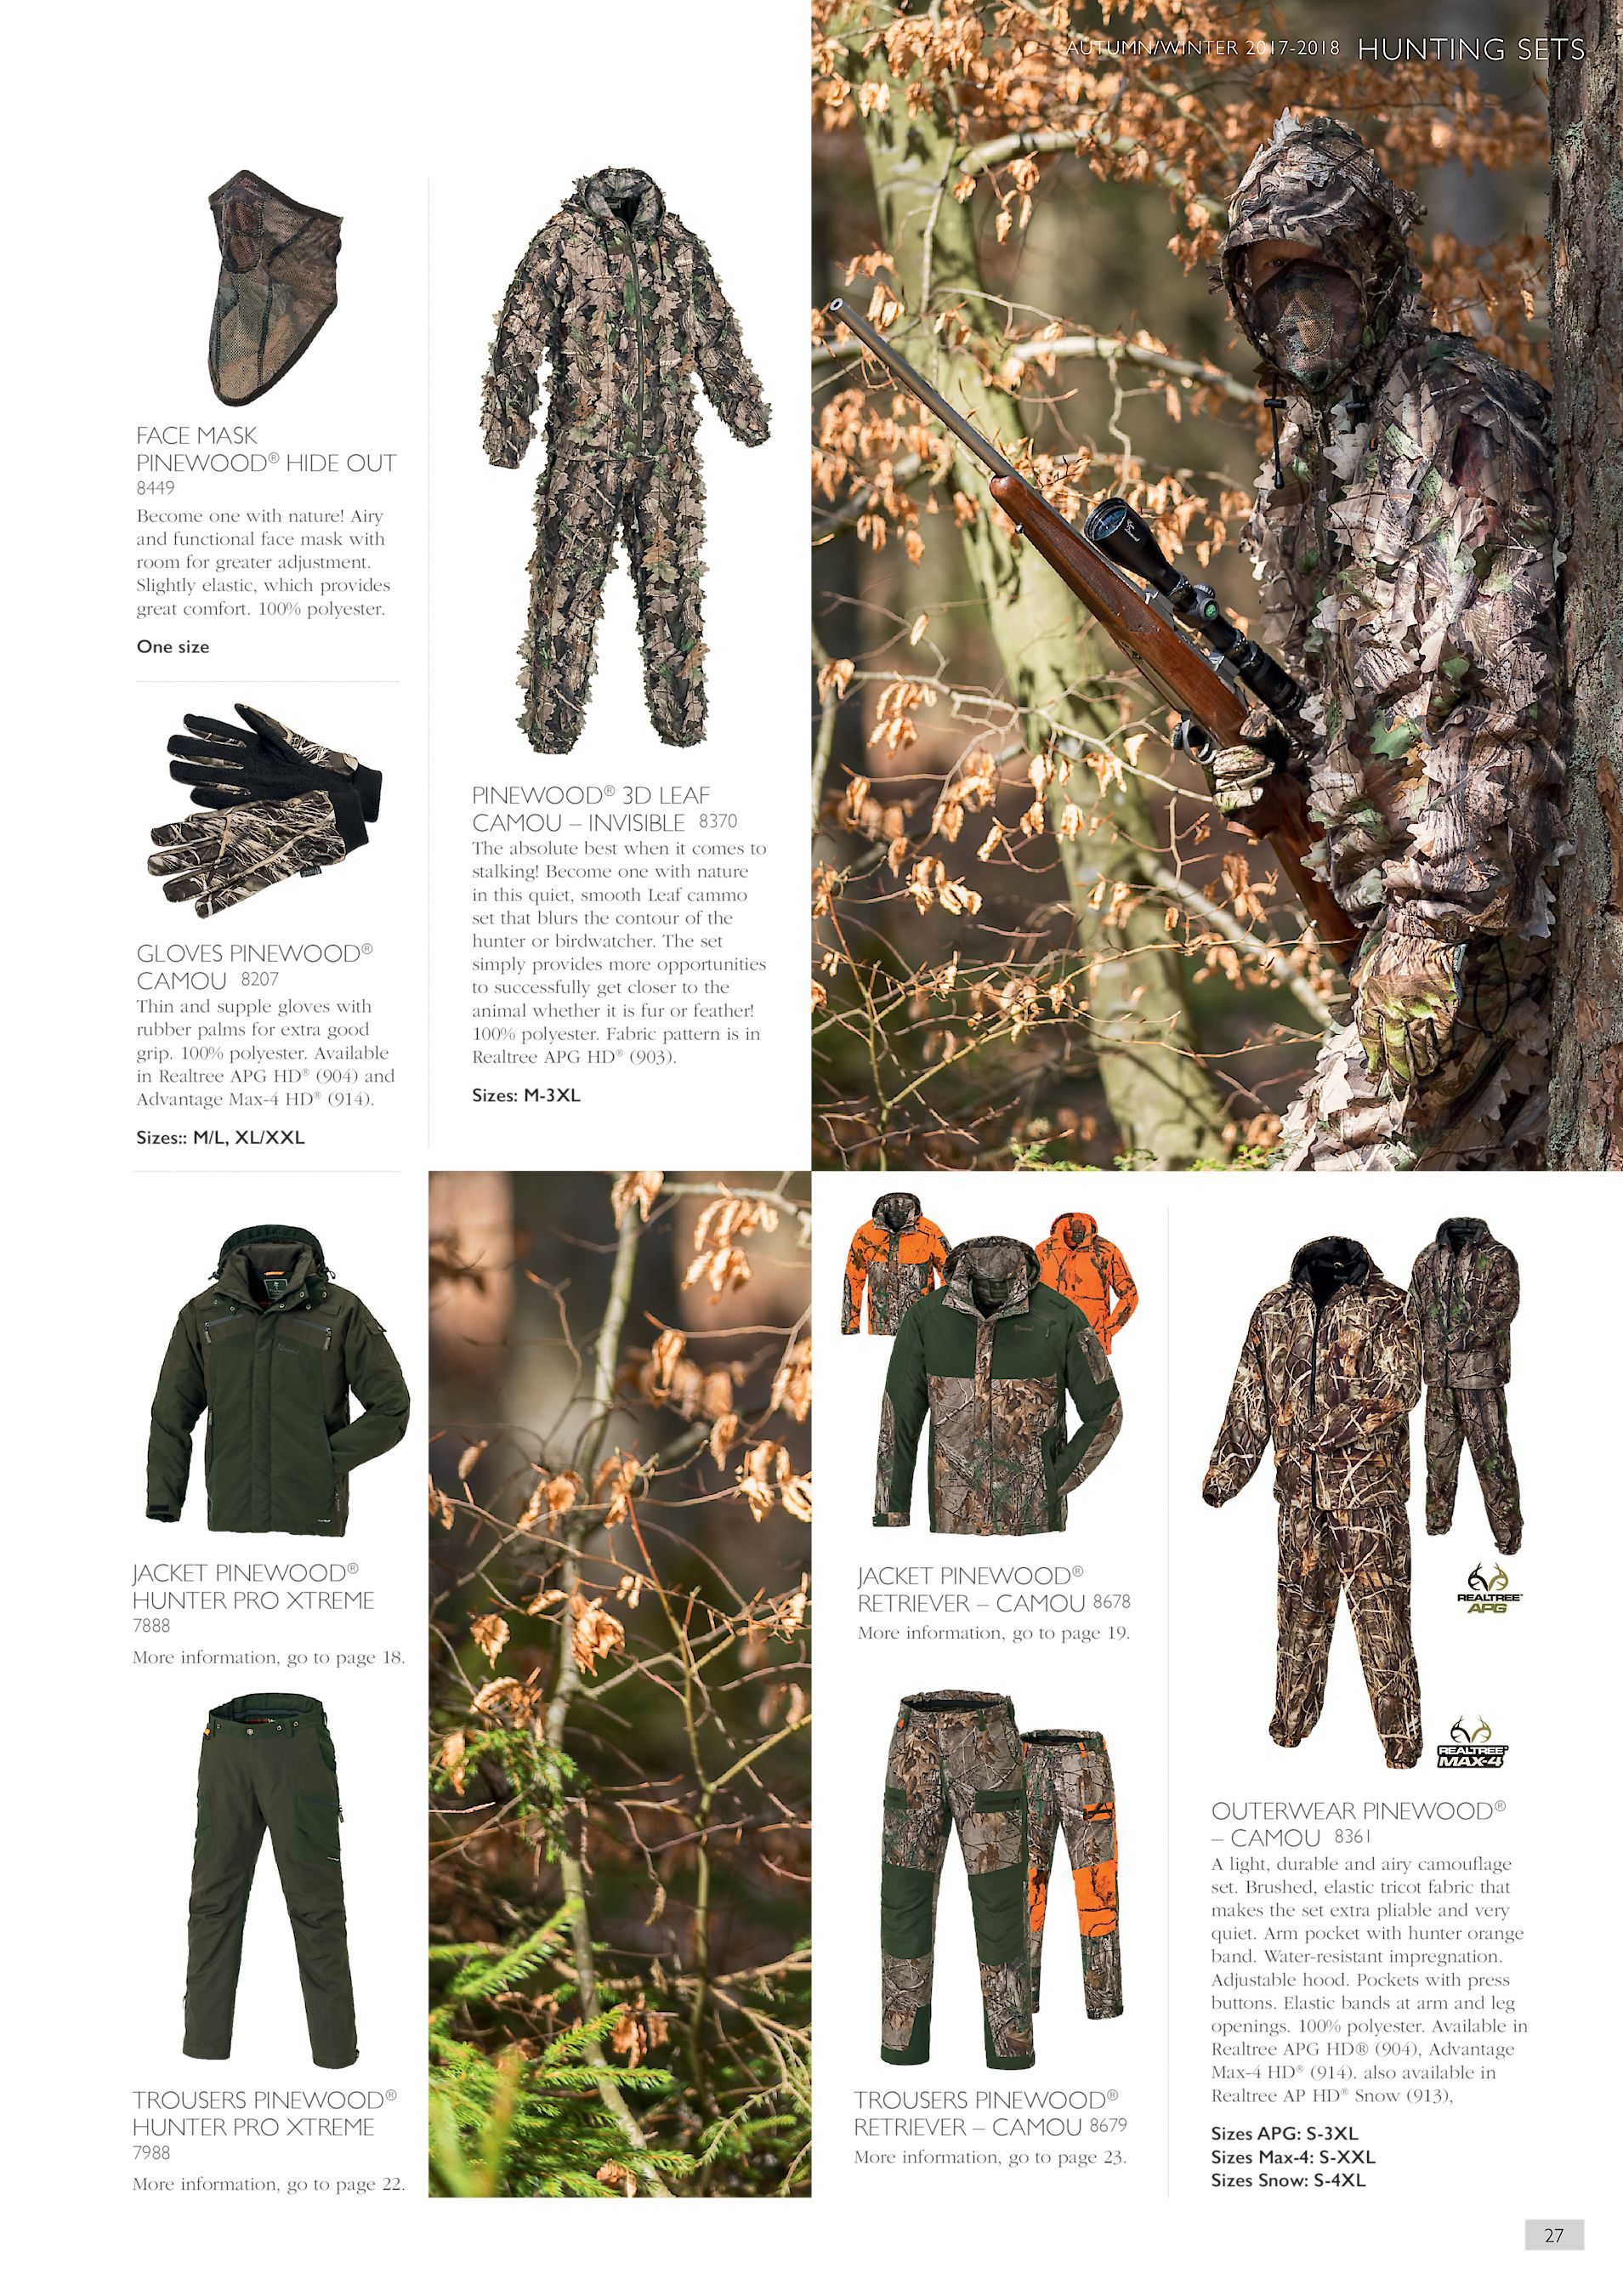 c30d5fa6c1580 AUTUMN/WINTER 2017-2018 HUNTING SETS FACE MASK PINEWOOD® HIDE OUT 8449  Become one with nature! Airy and functional face mask with room for greater  ...